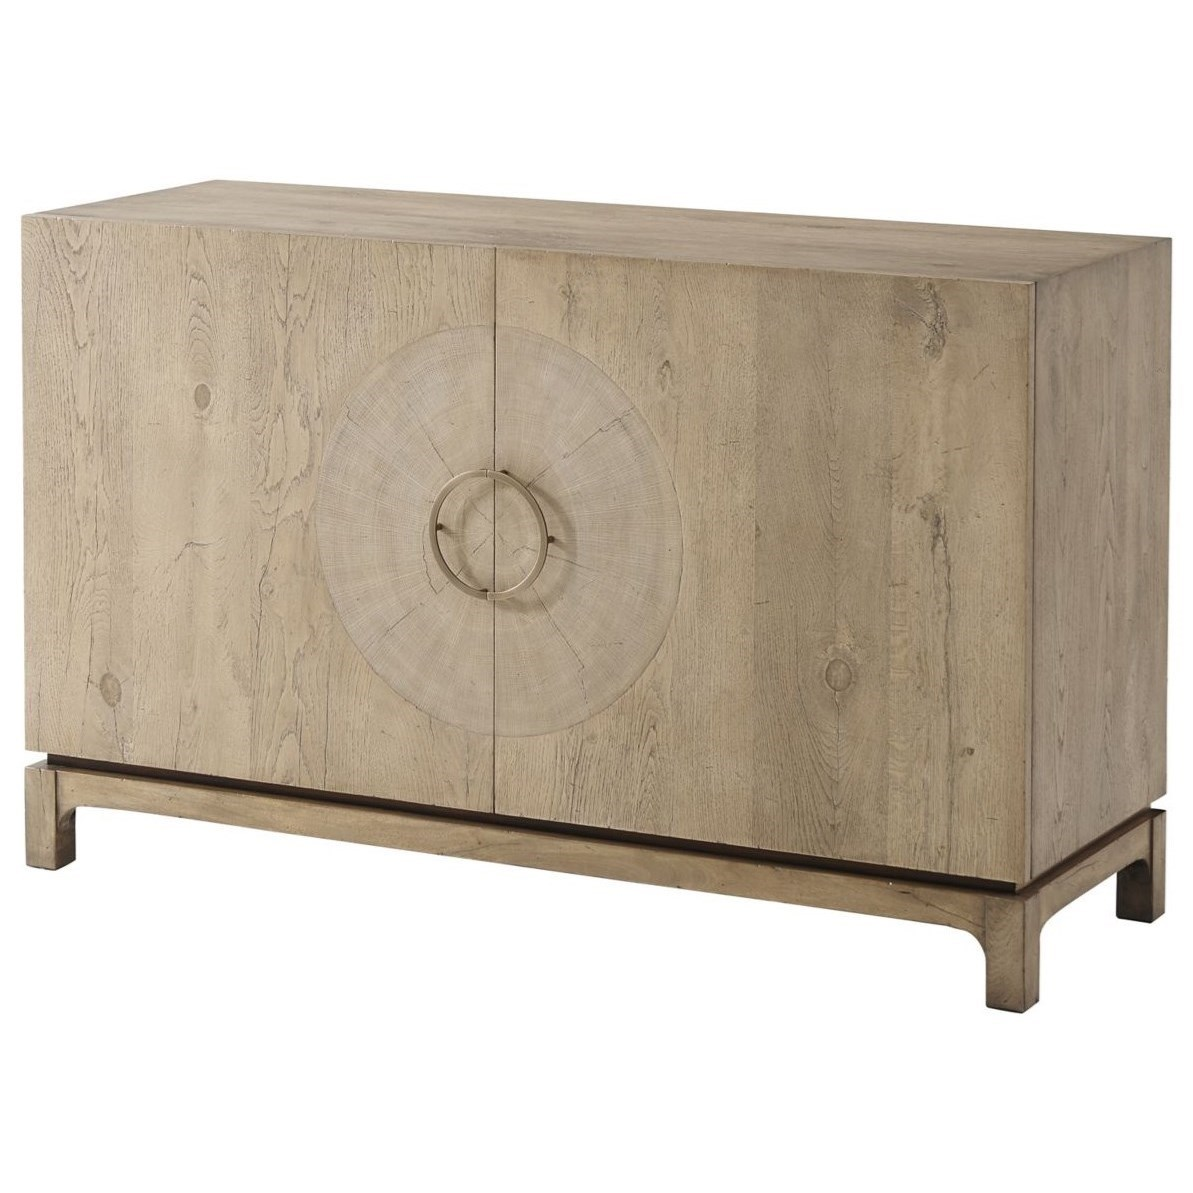 Cabinets and Sideboards Sawyer Cabinet by Theodore Alexander at Baer's Furniture